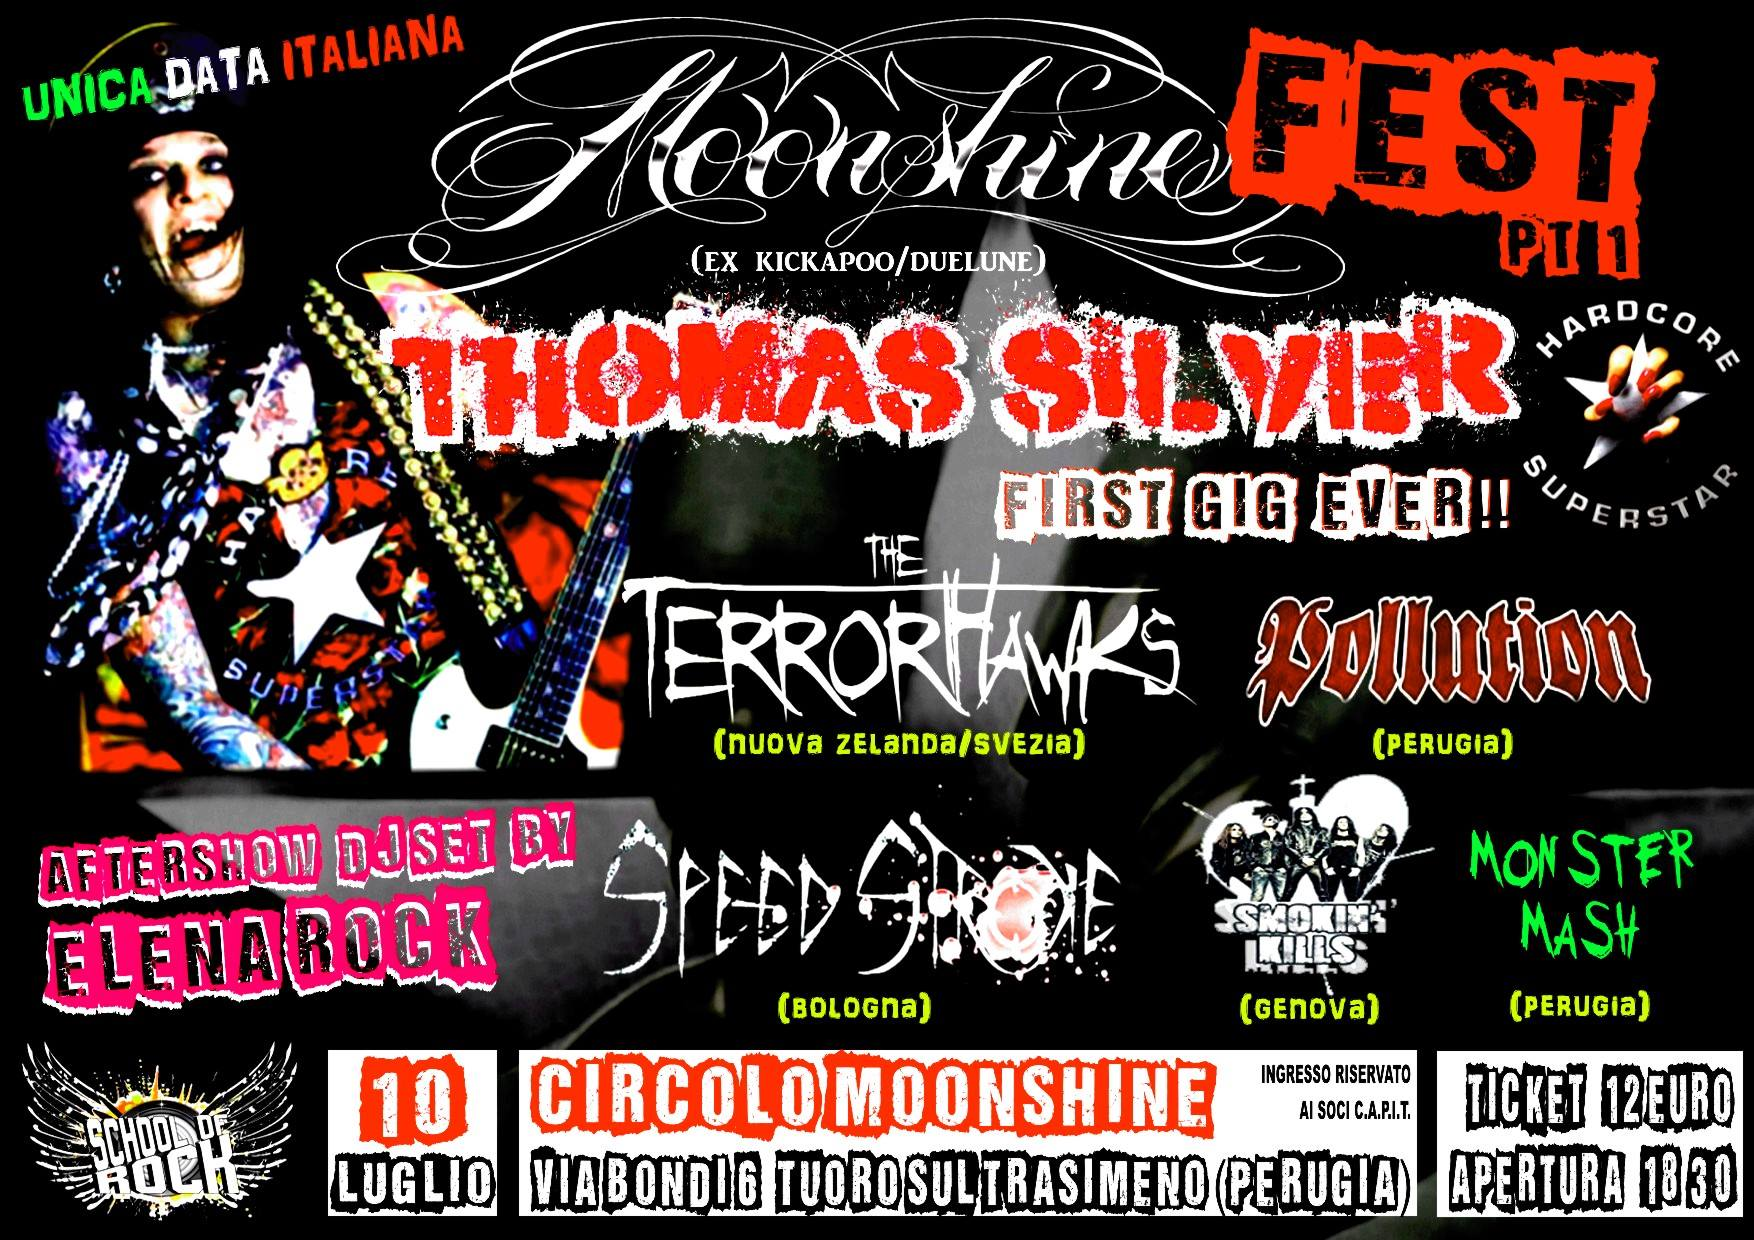 Thomas Silver degli Hardcore Superstar al Moonshine fest